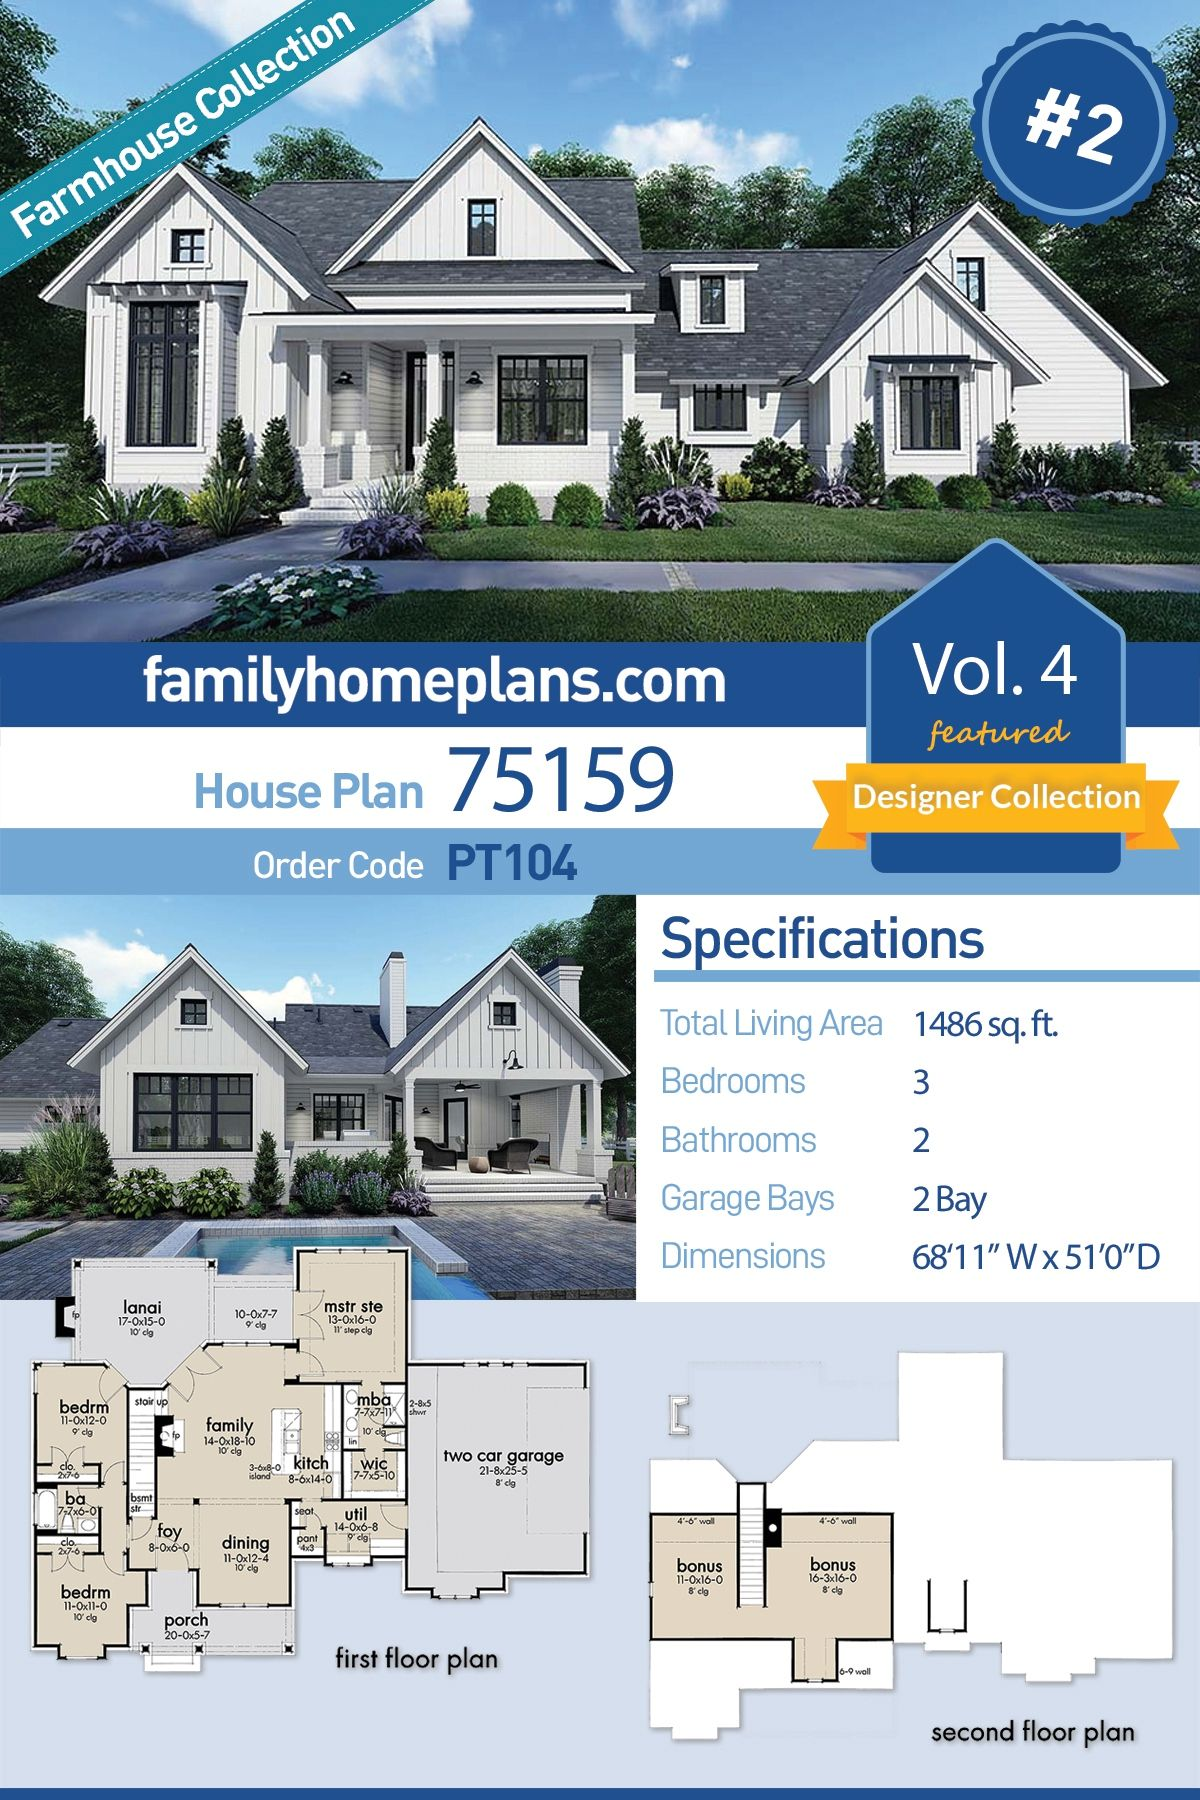 Southern Style House Plan 75159 With 3 Bed 2 Bath 2 Car Garage House Plans Farmhouse House Plans Garage House Plans